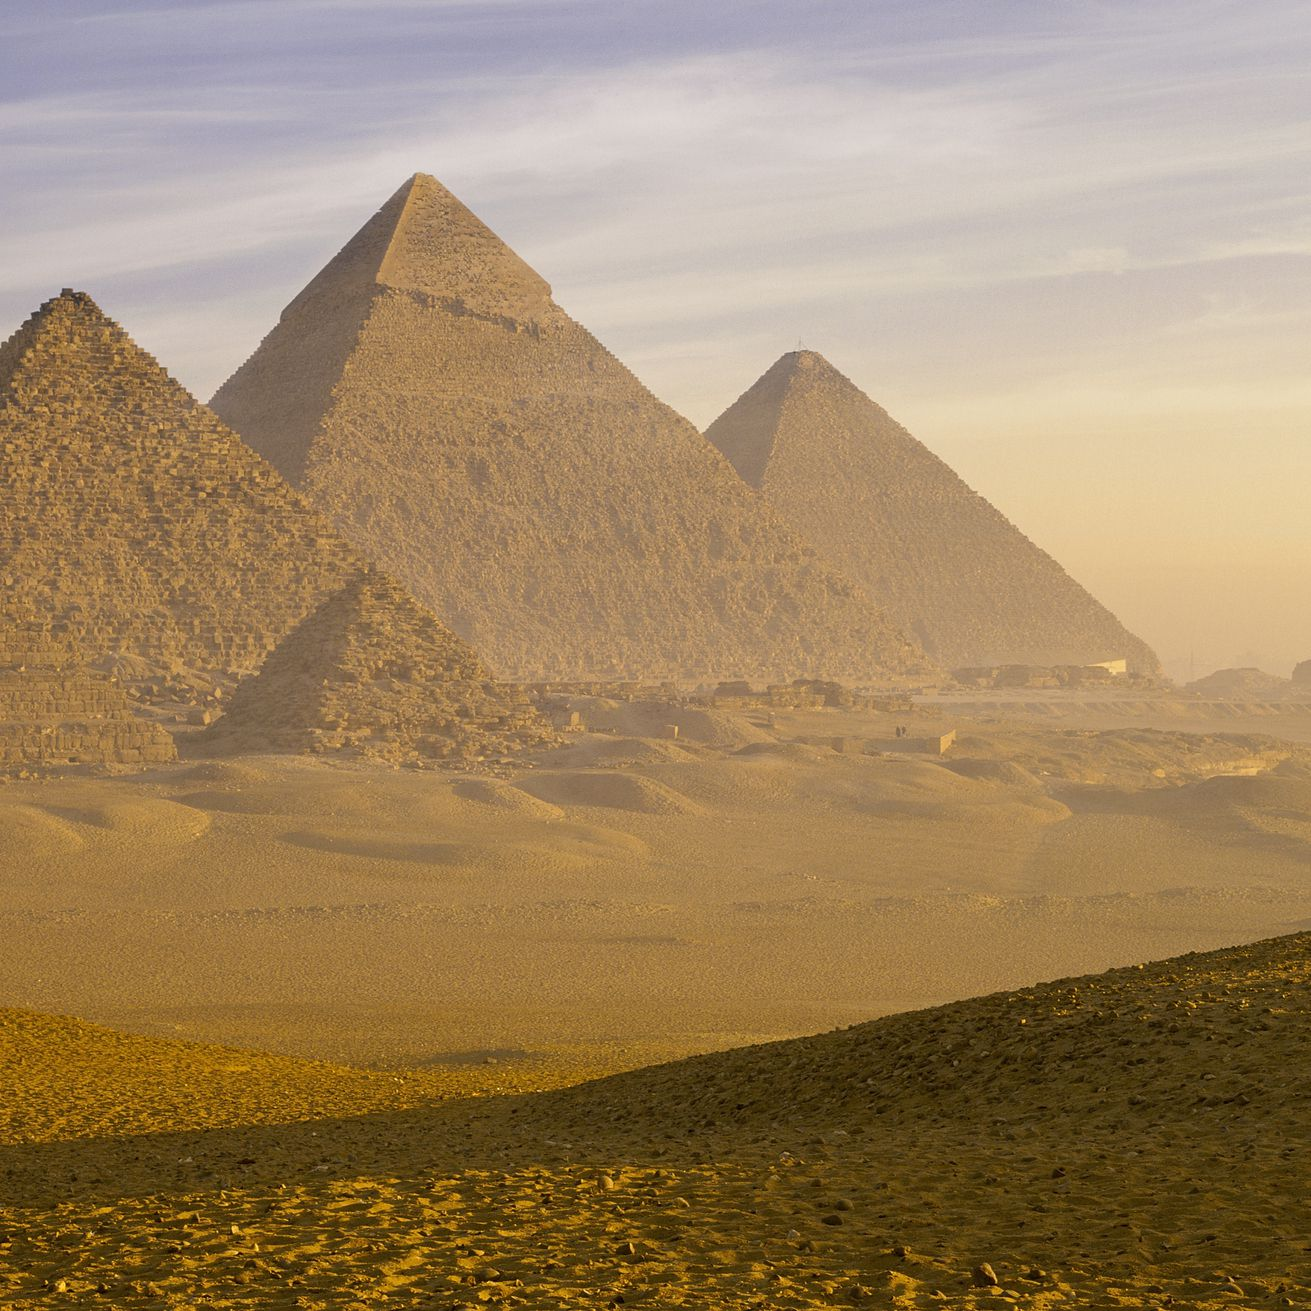 Pyramids of Giza, Egypt: The Complete Guide